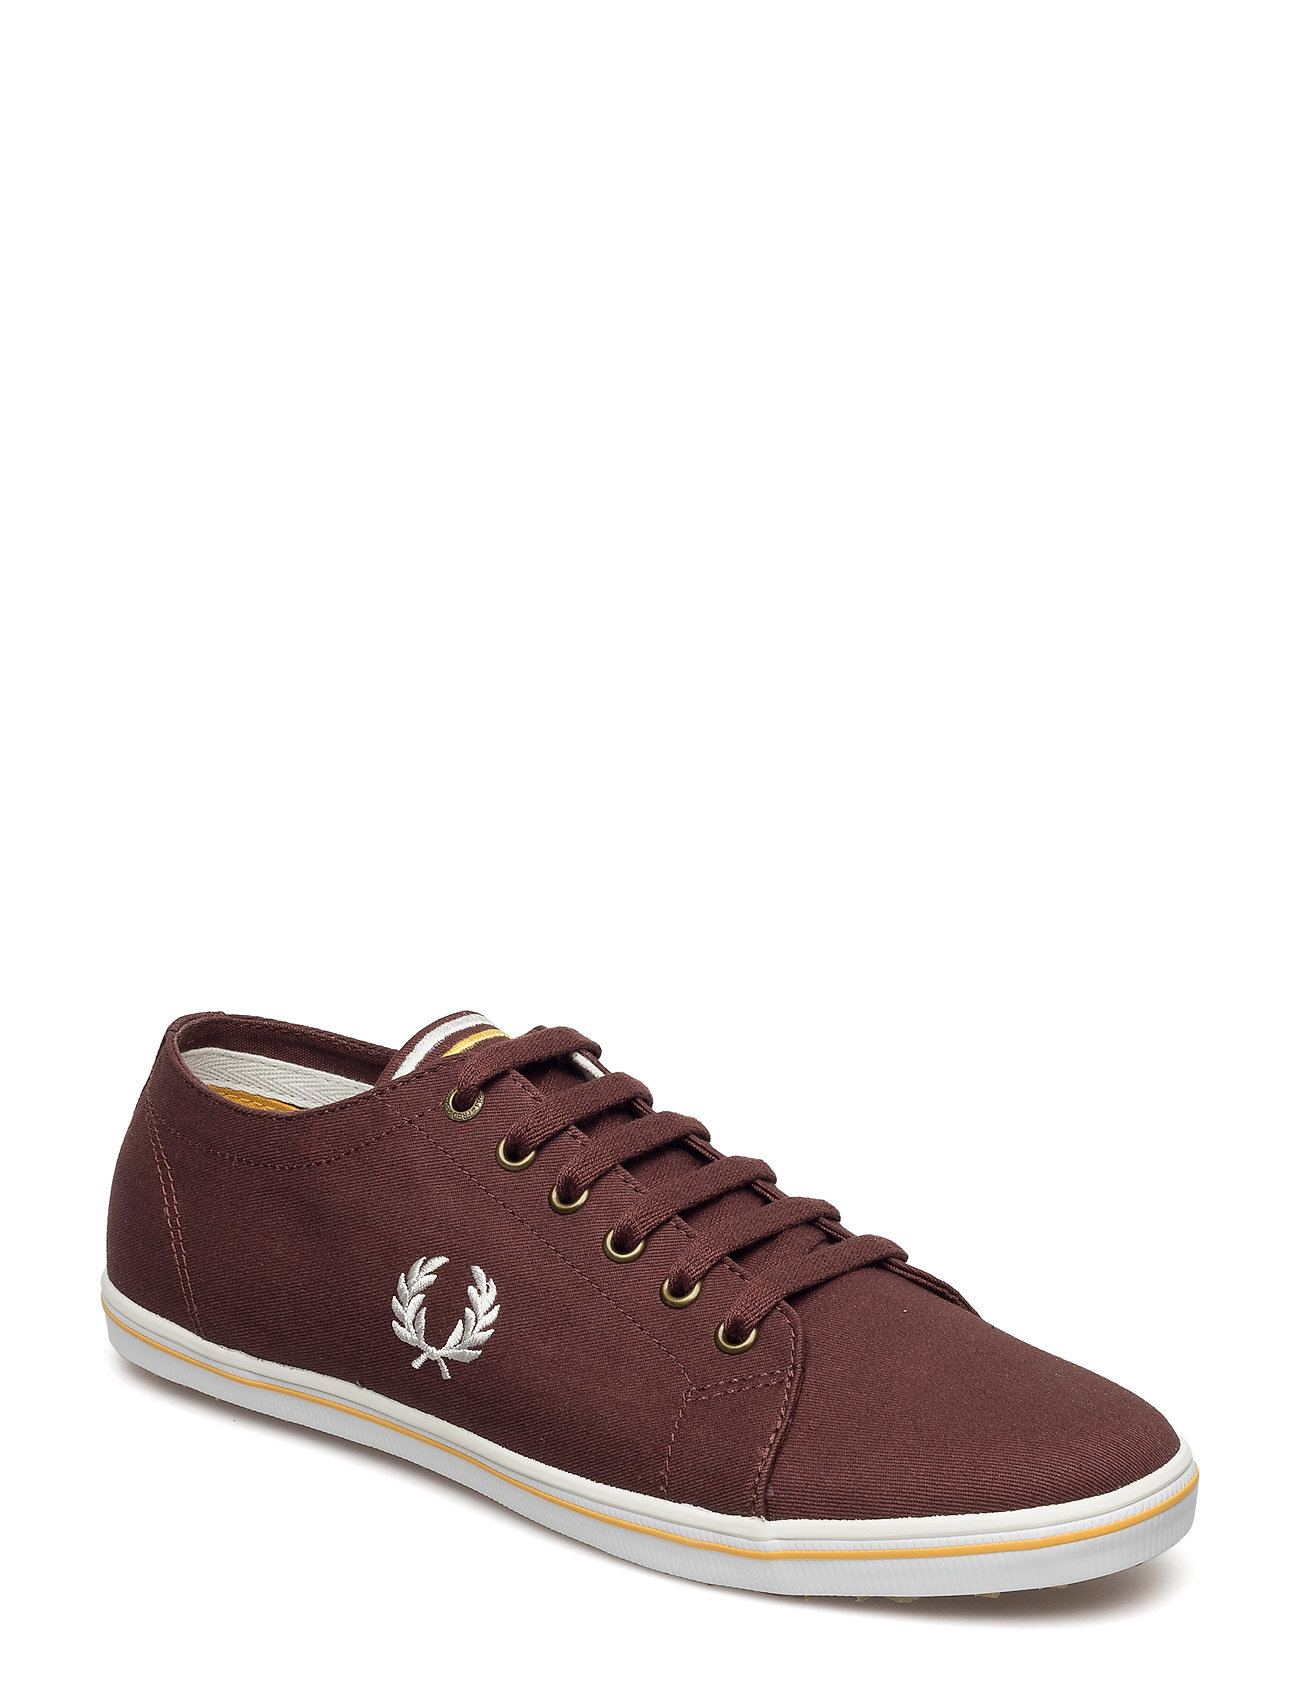 Kingston Twill Fred Perry Sneakers til Herrer i